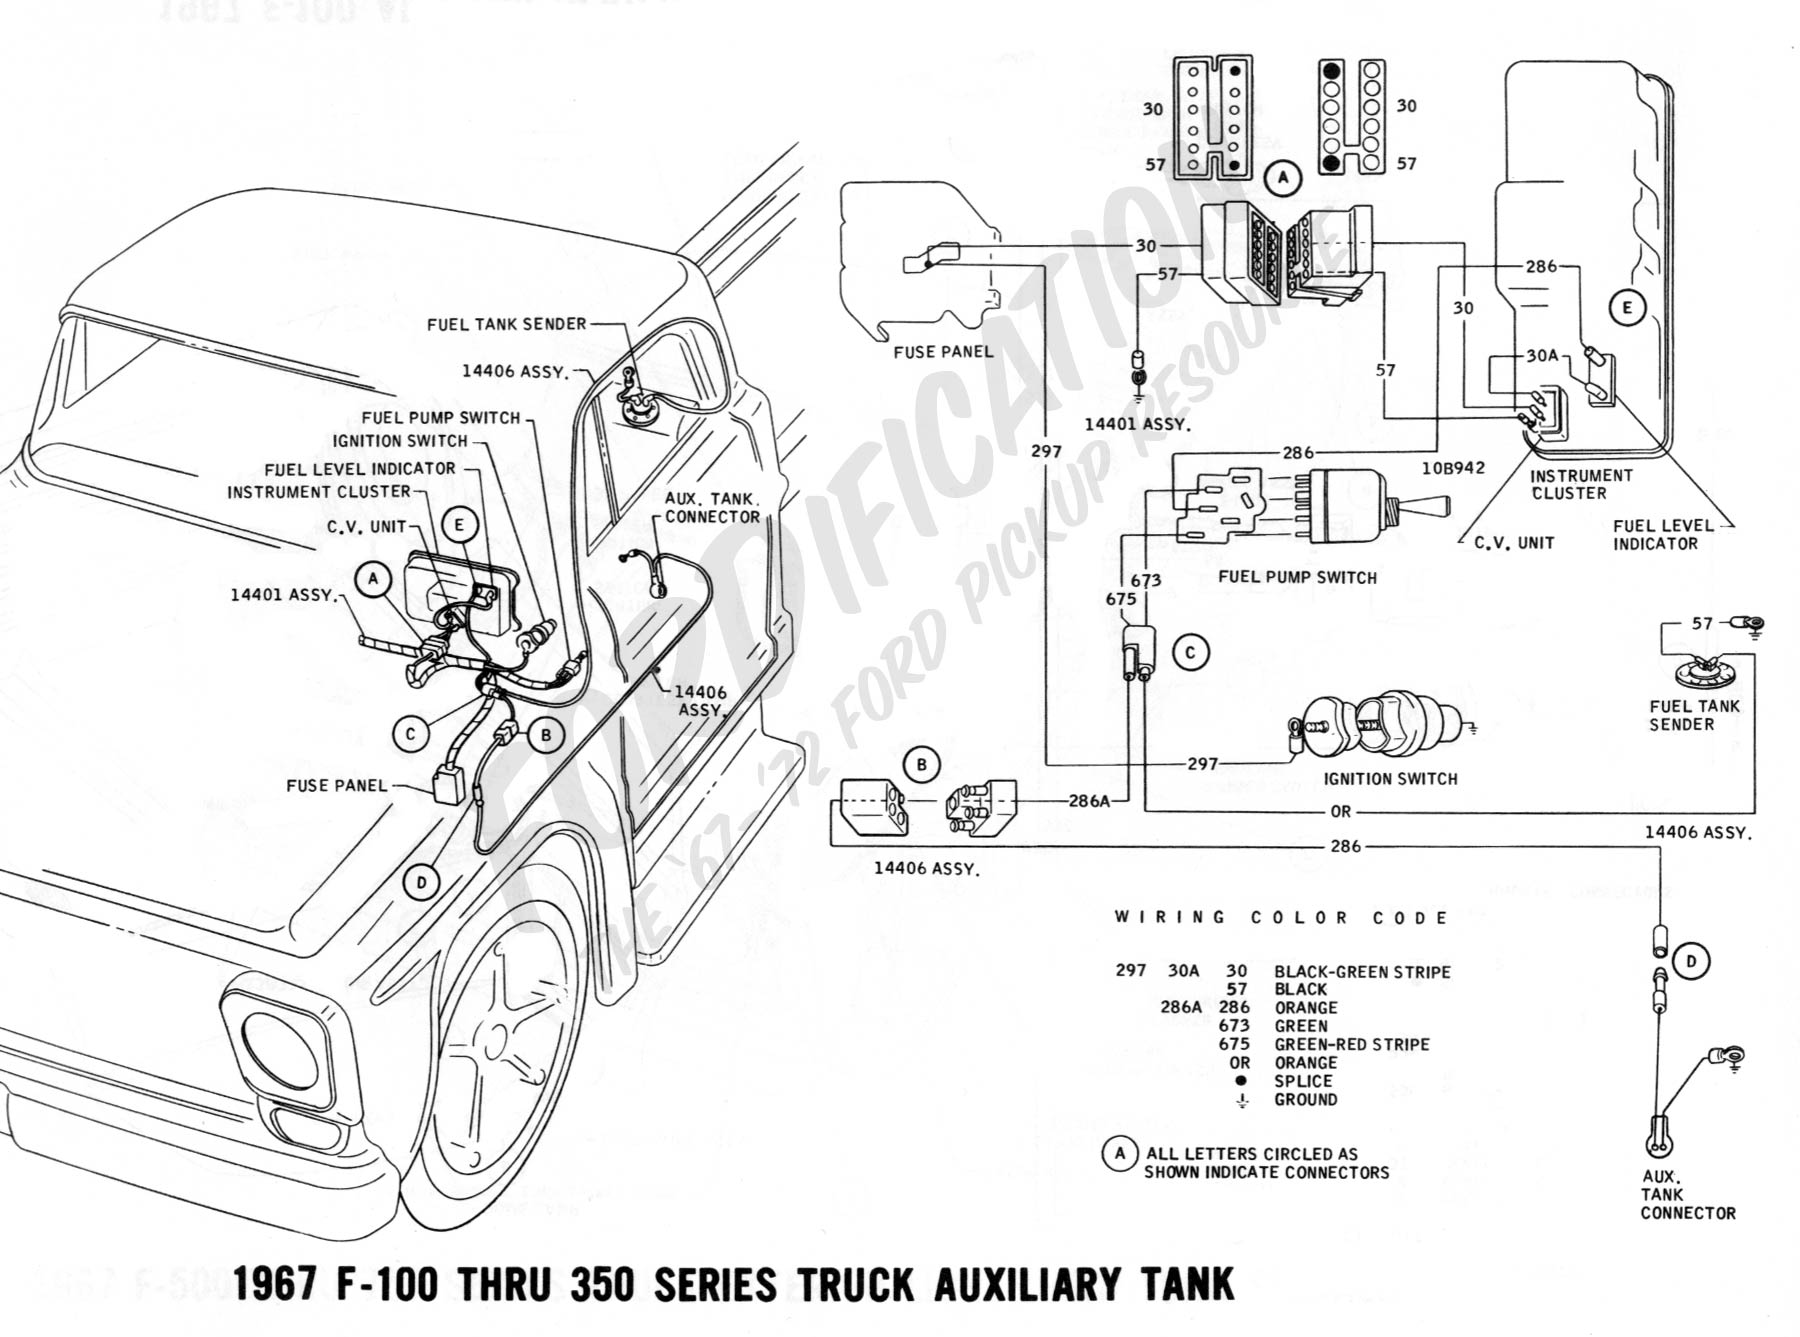 1991 Ford Bronco Fuel System Diagram